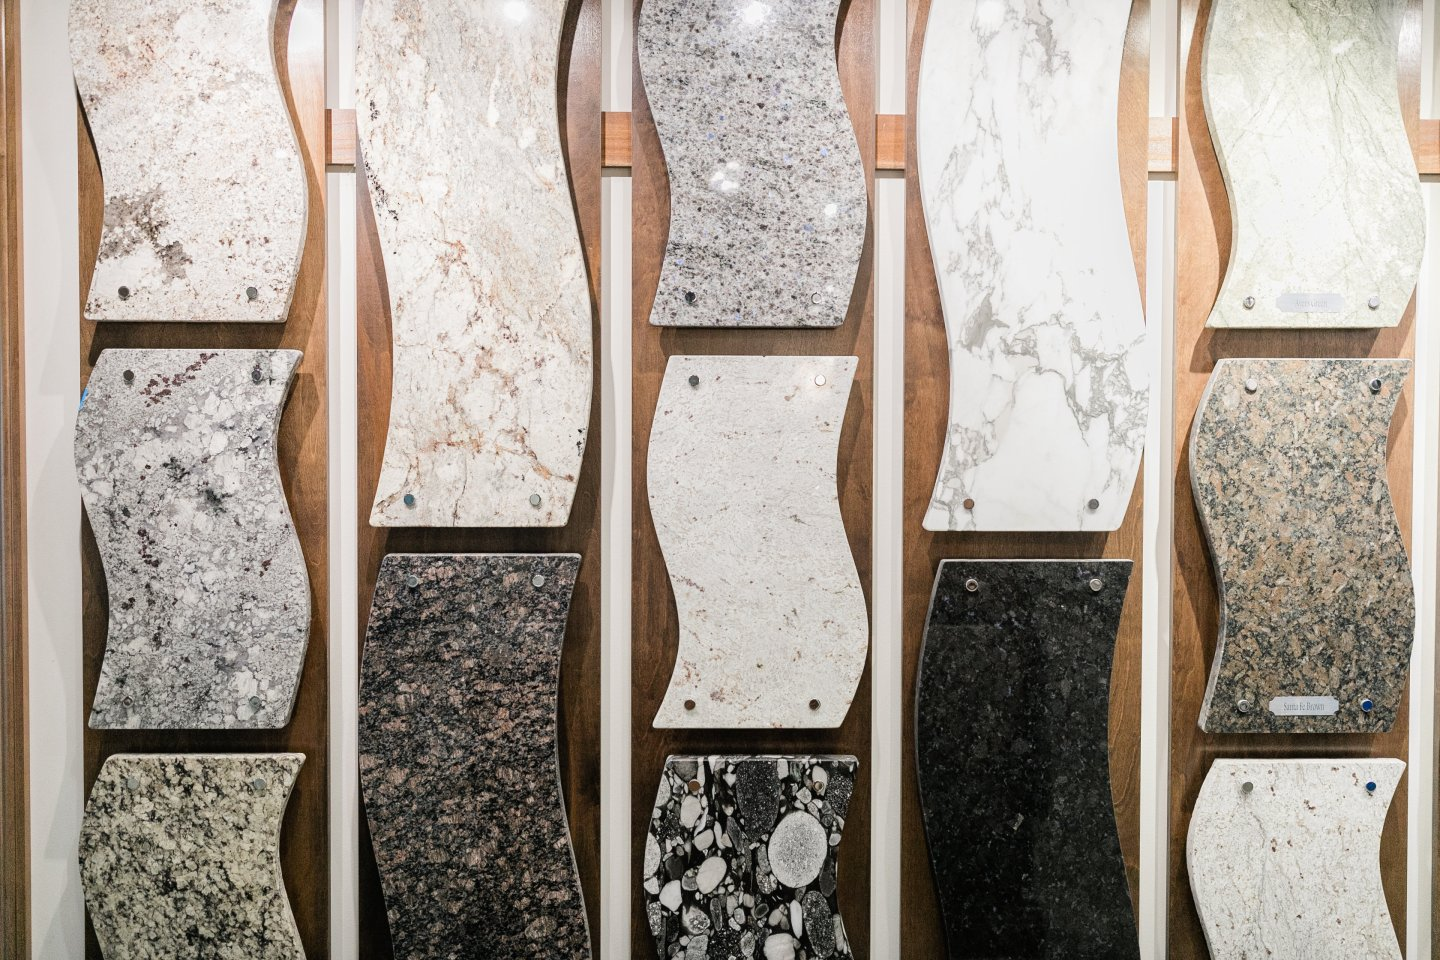 View More: http://morgan-marie.pass.us/alismithstyle-cutting-edge-countertops